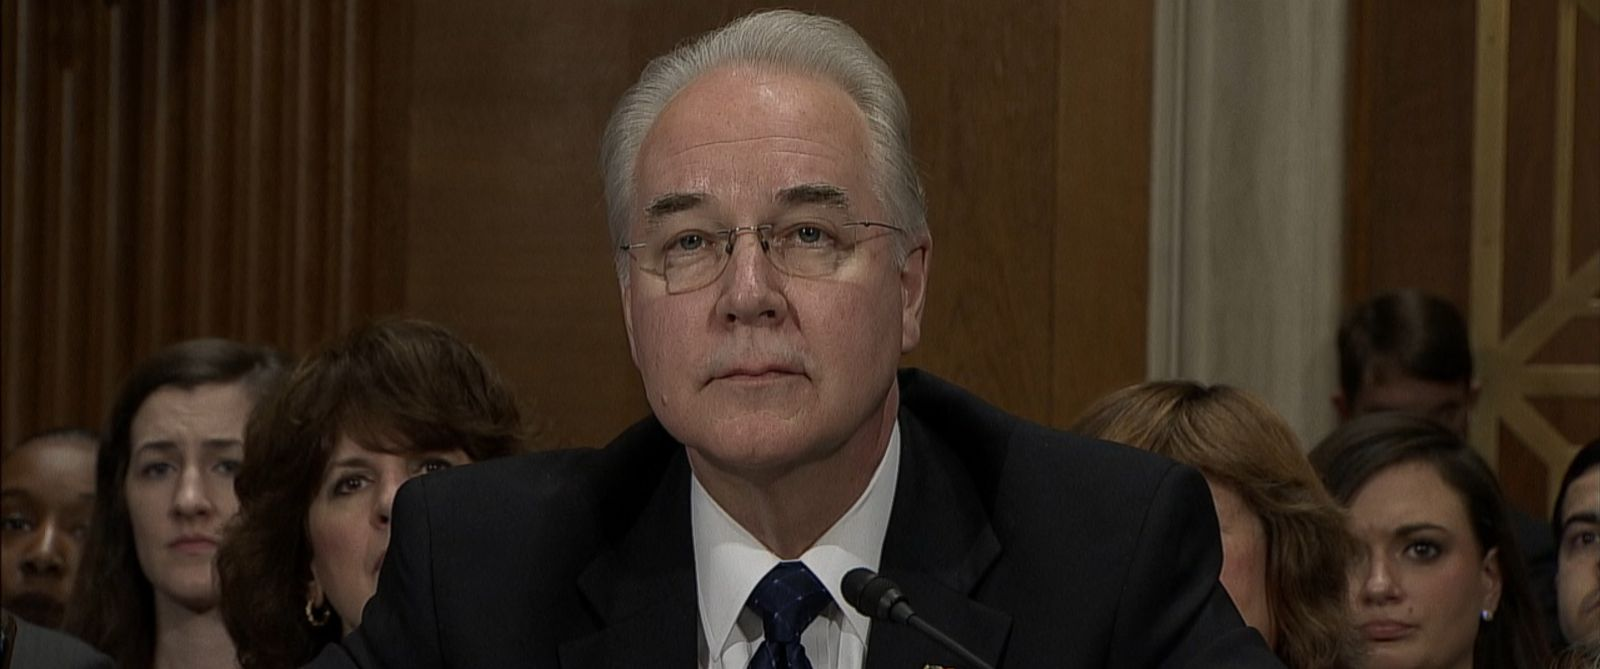 VIDEO: HHS Pick Tom Price Denies Wrongdoing Over Stock Transaction Rep. Tom Price faced questions from Sen. Patty Murray at a Senate confirmation hearing.